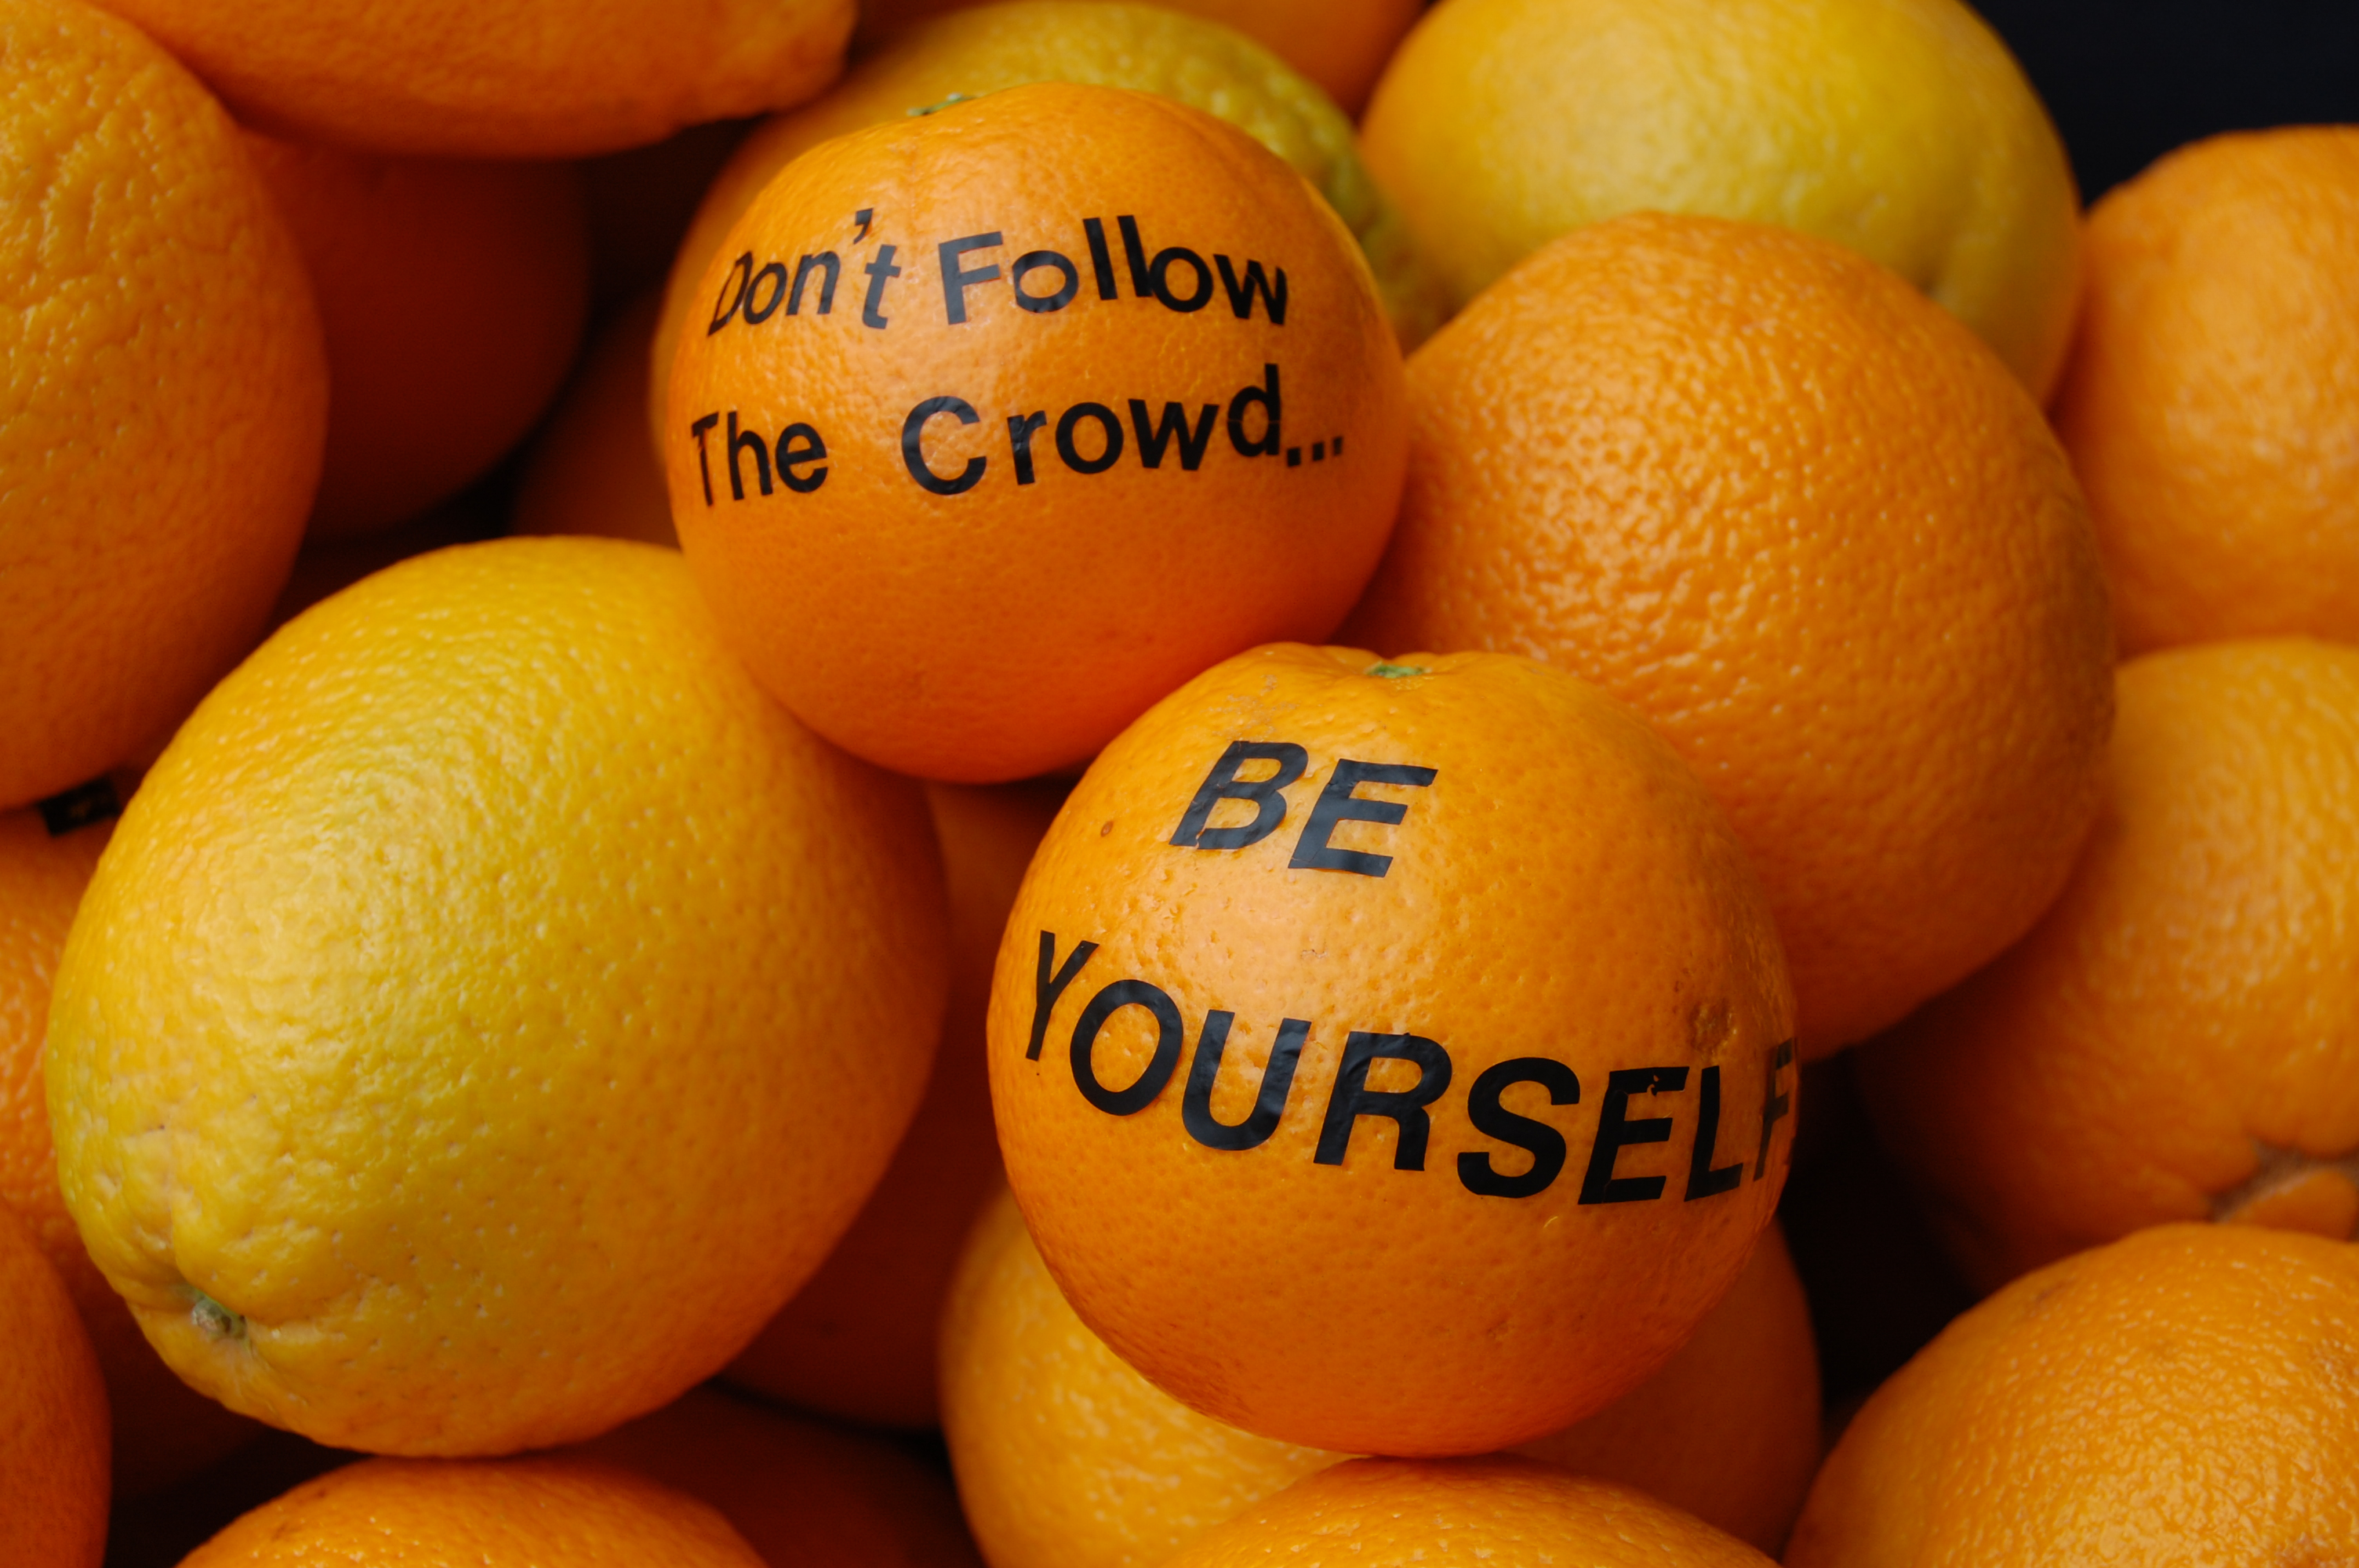 oranges with text written on them